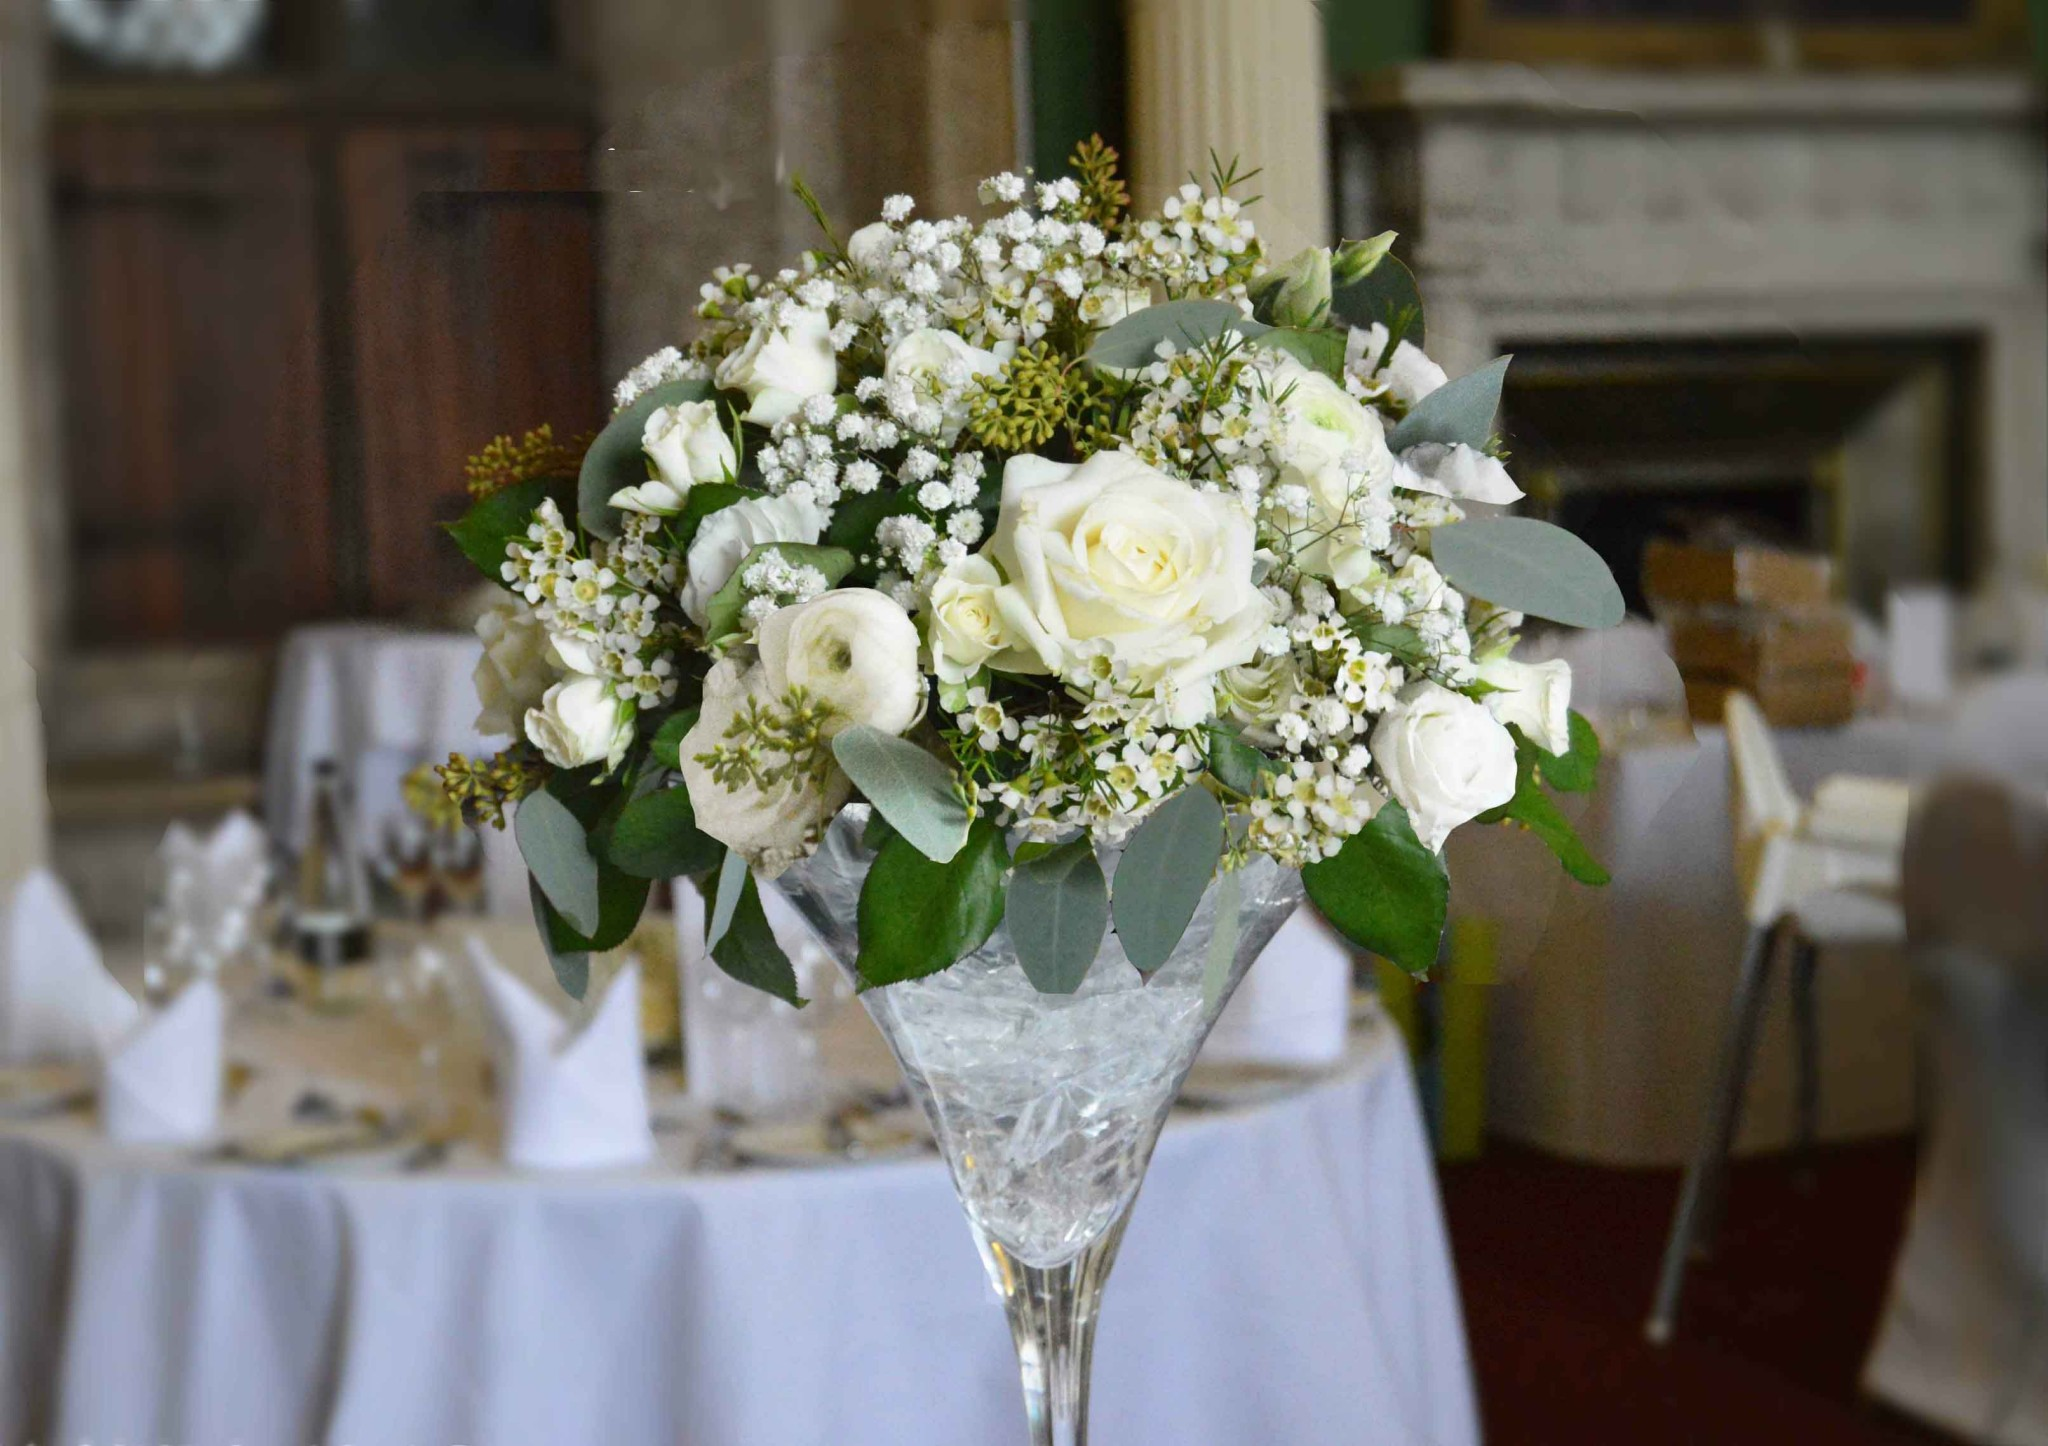 martini vase wedding flowers leeds hazlewood castle